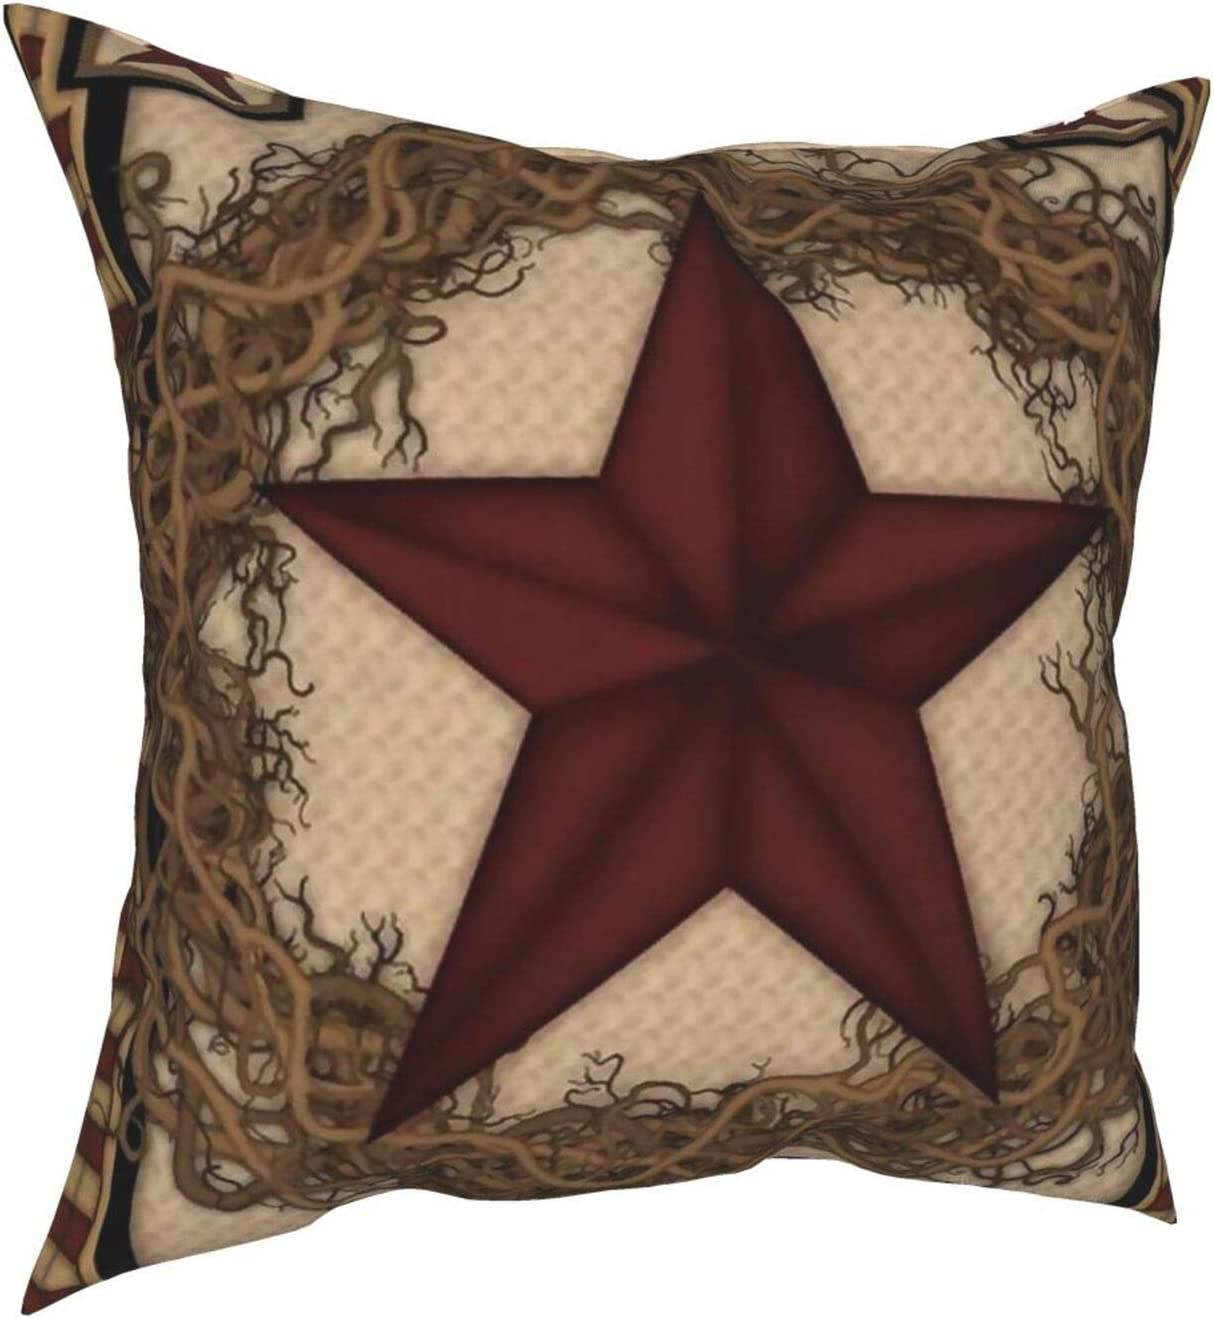 LASWEGA Pillowcase Cushion Cover Country Primitive Barn Star Wreath Luxury Throw Pillow Covers Home Decor for Couch Sofa Bedroom Living Room 18 X 18 Inch